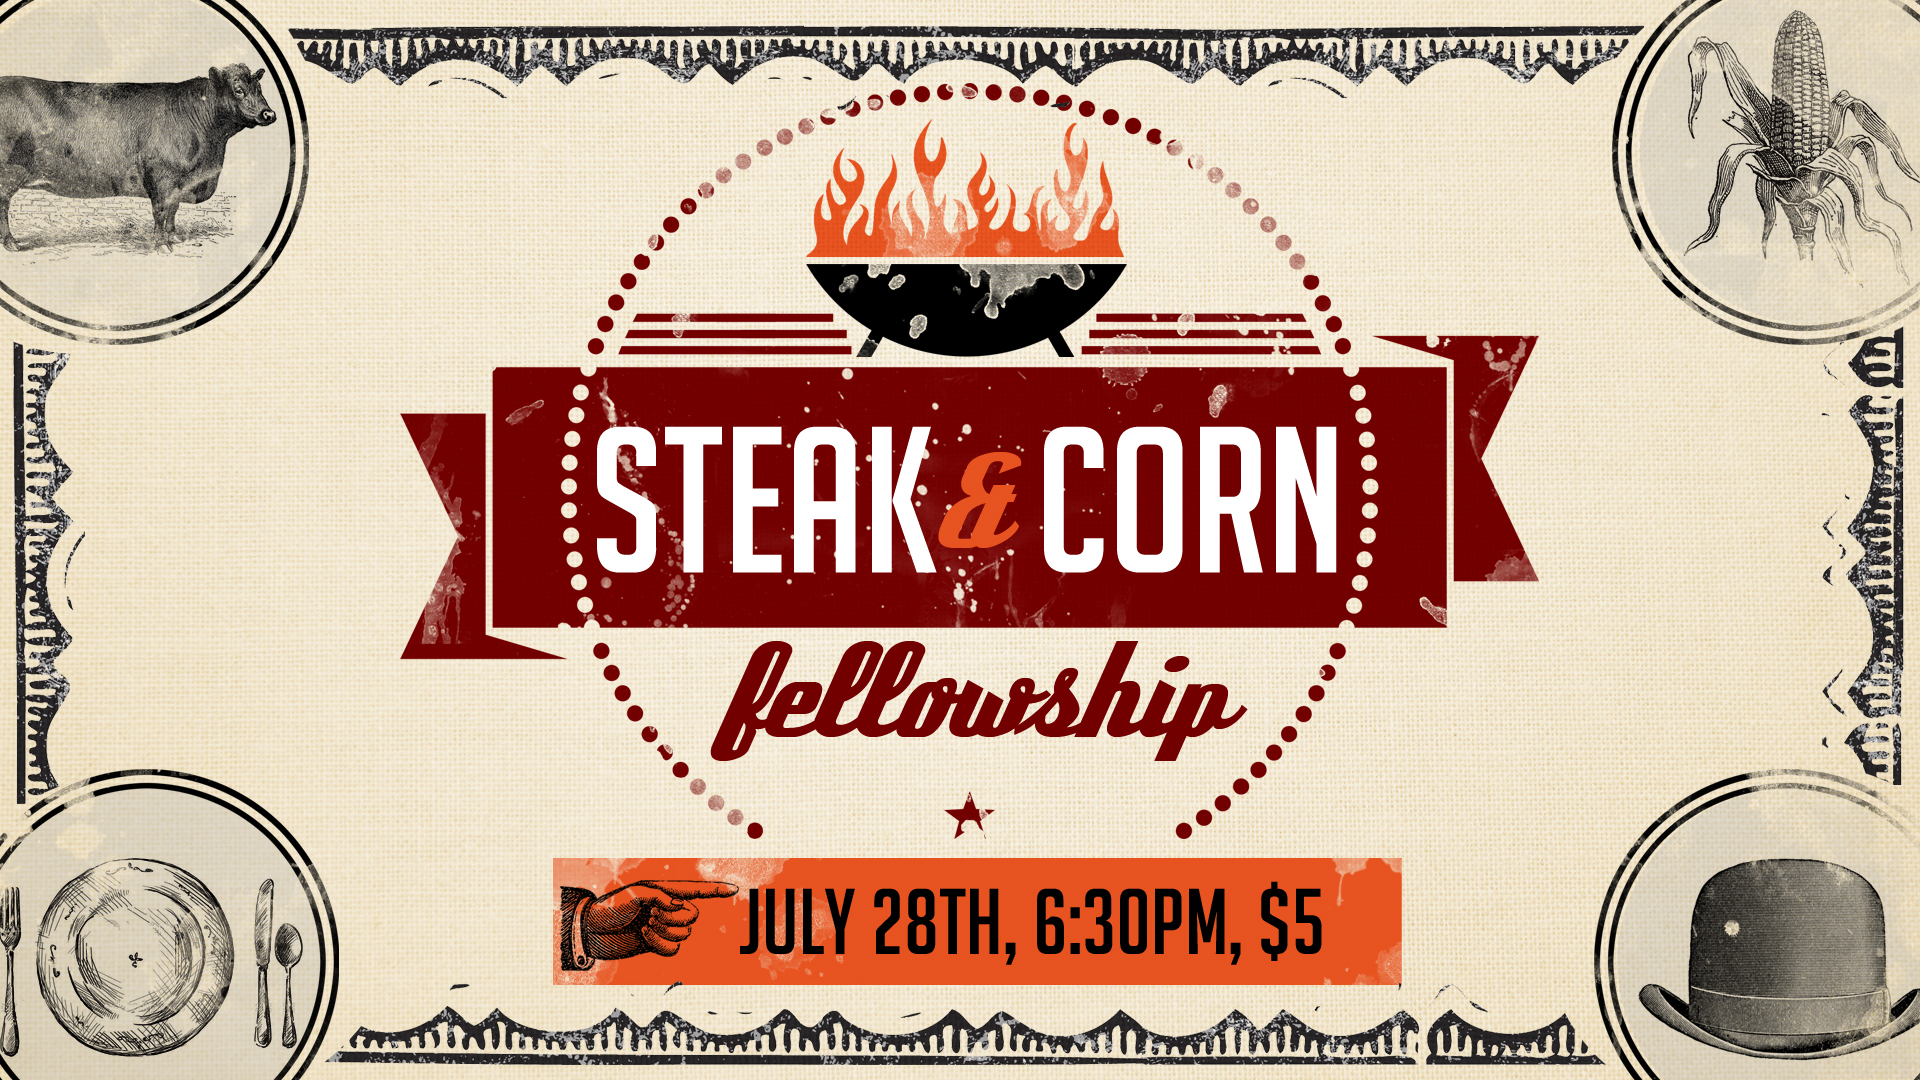 SteakCorn_1920